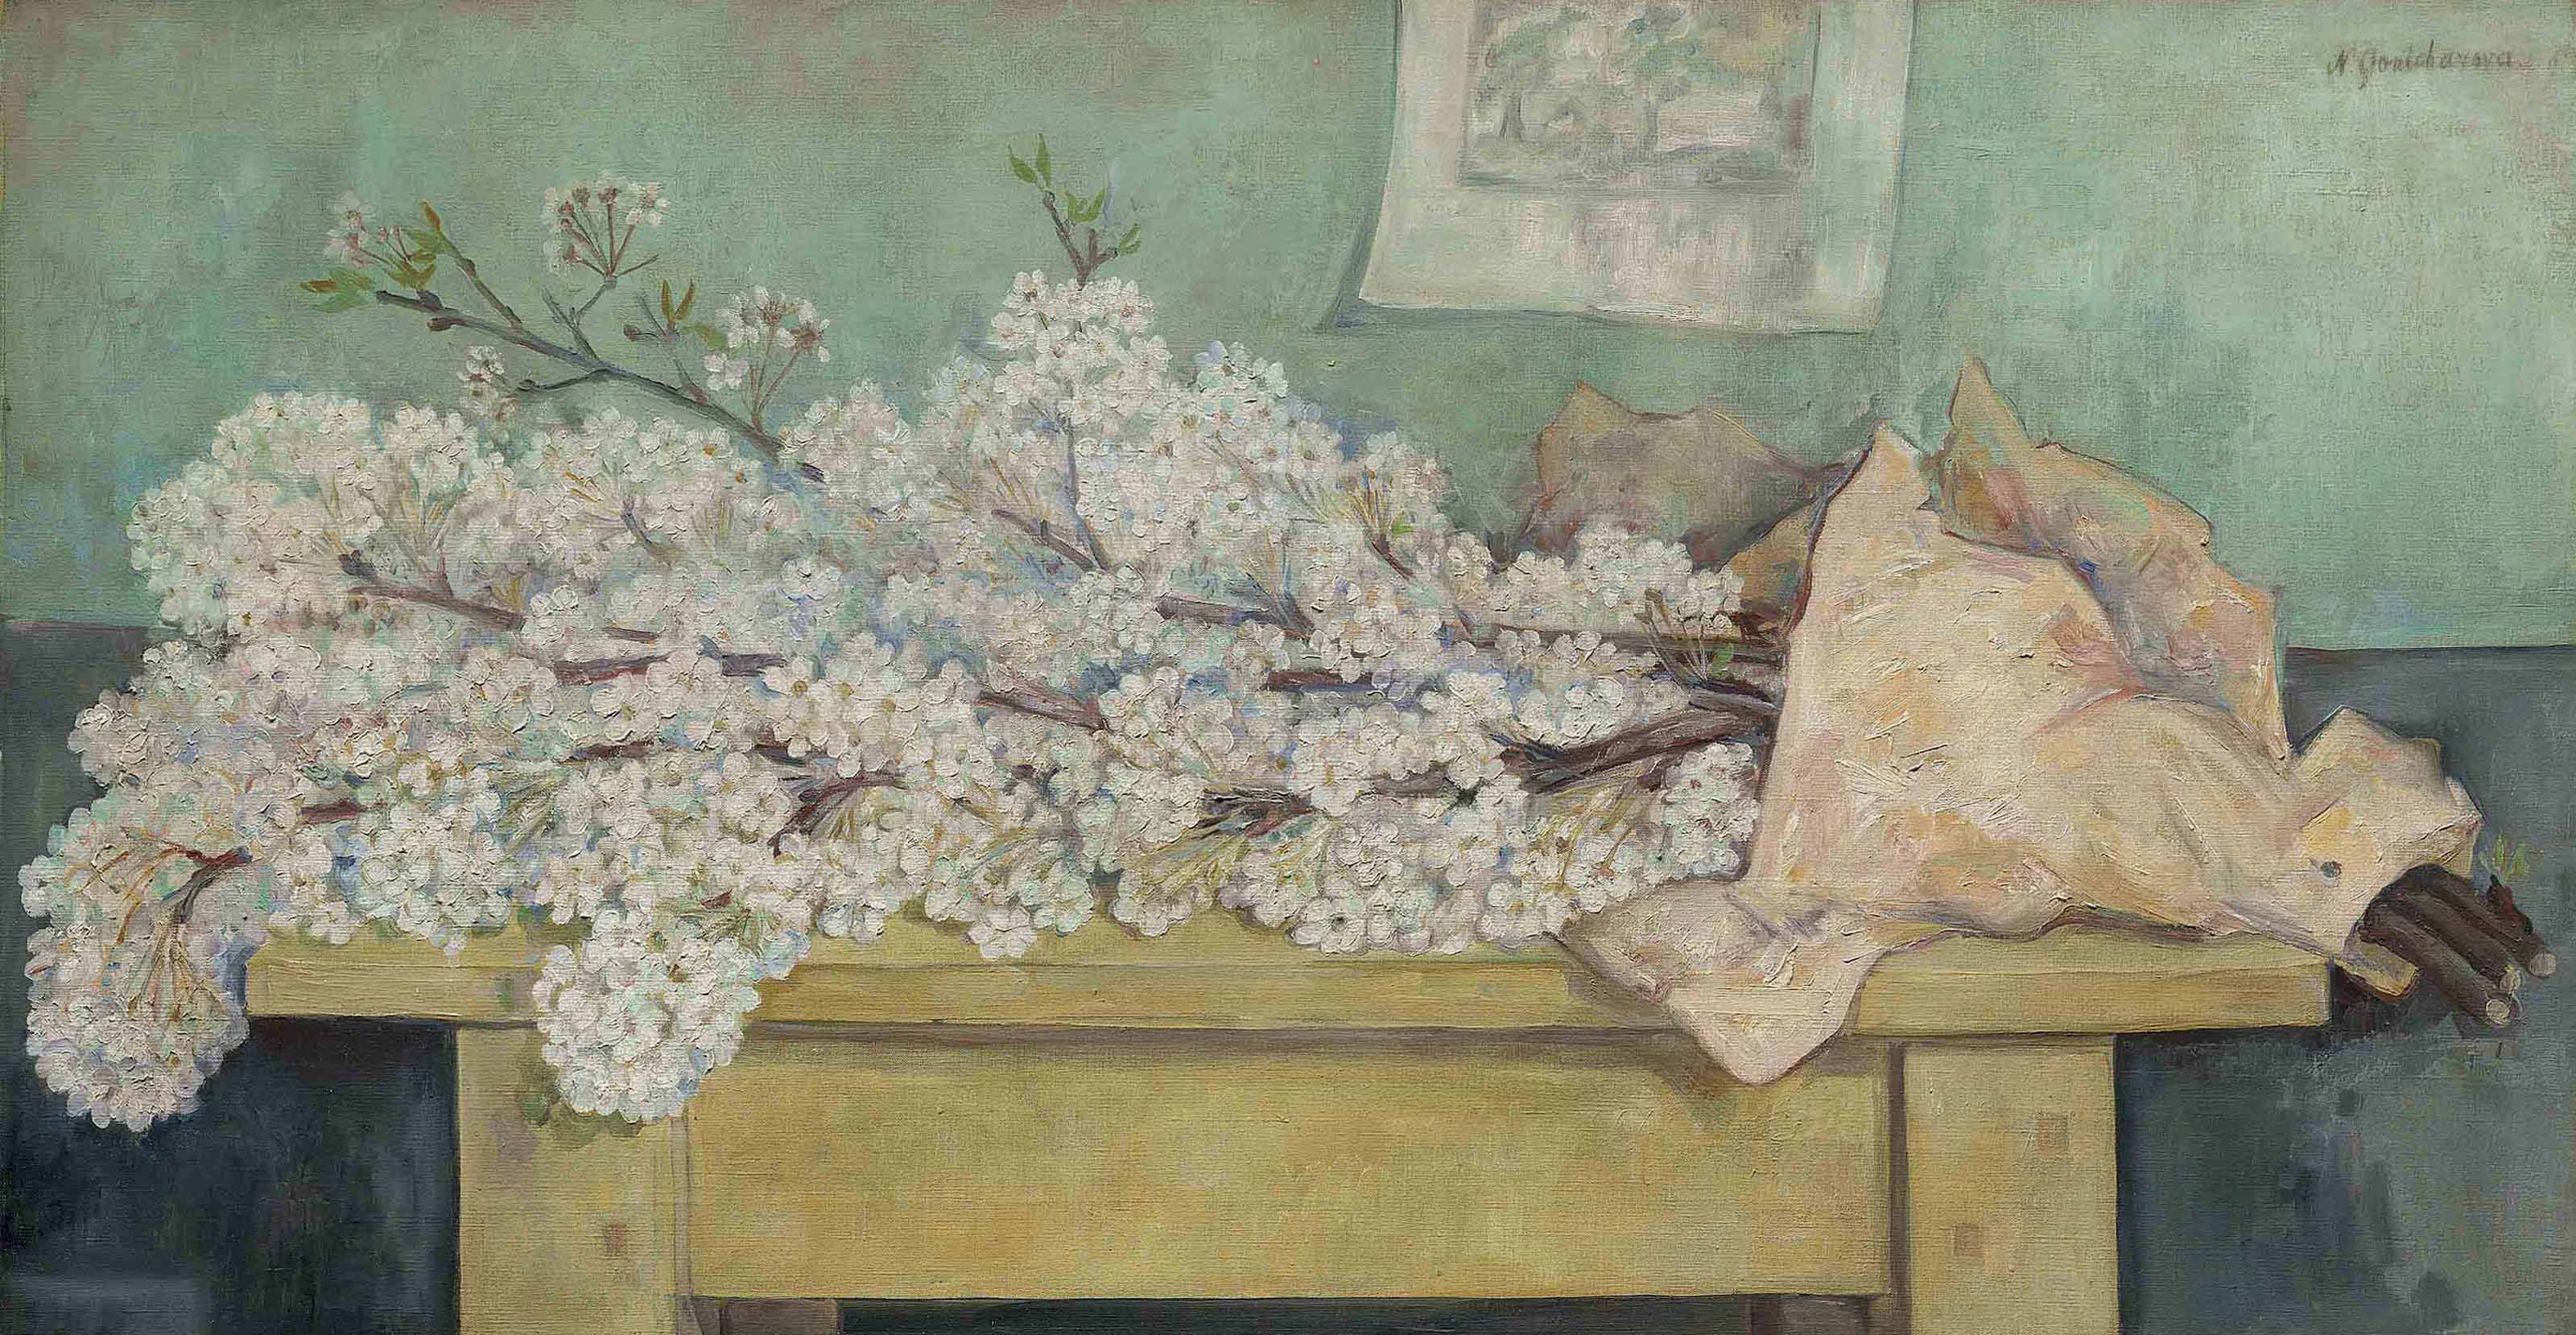 Still life with apple blossom